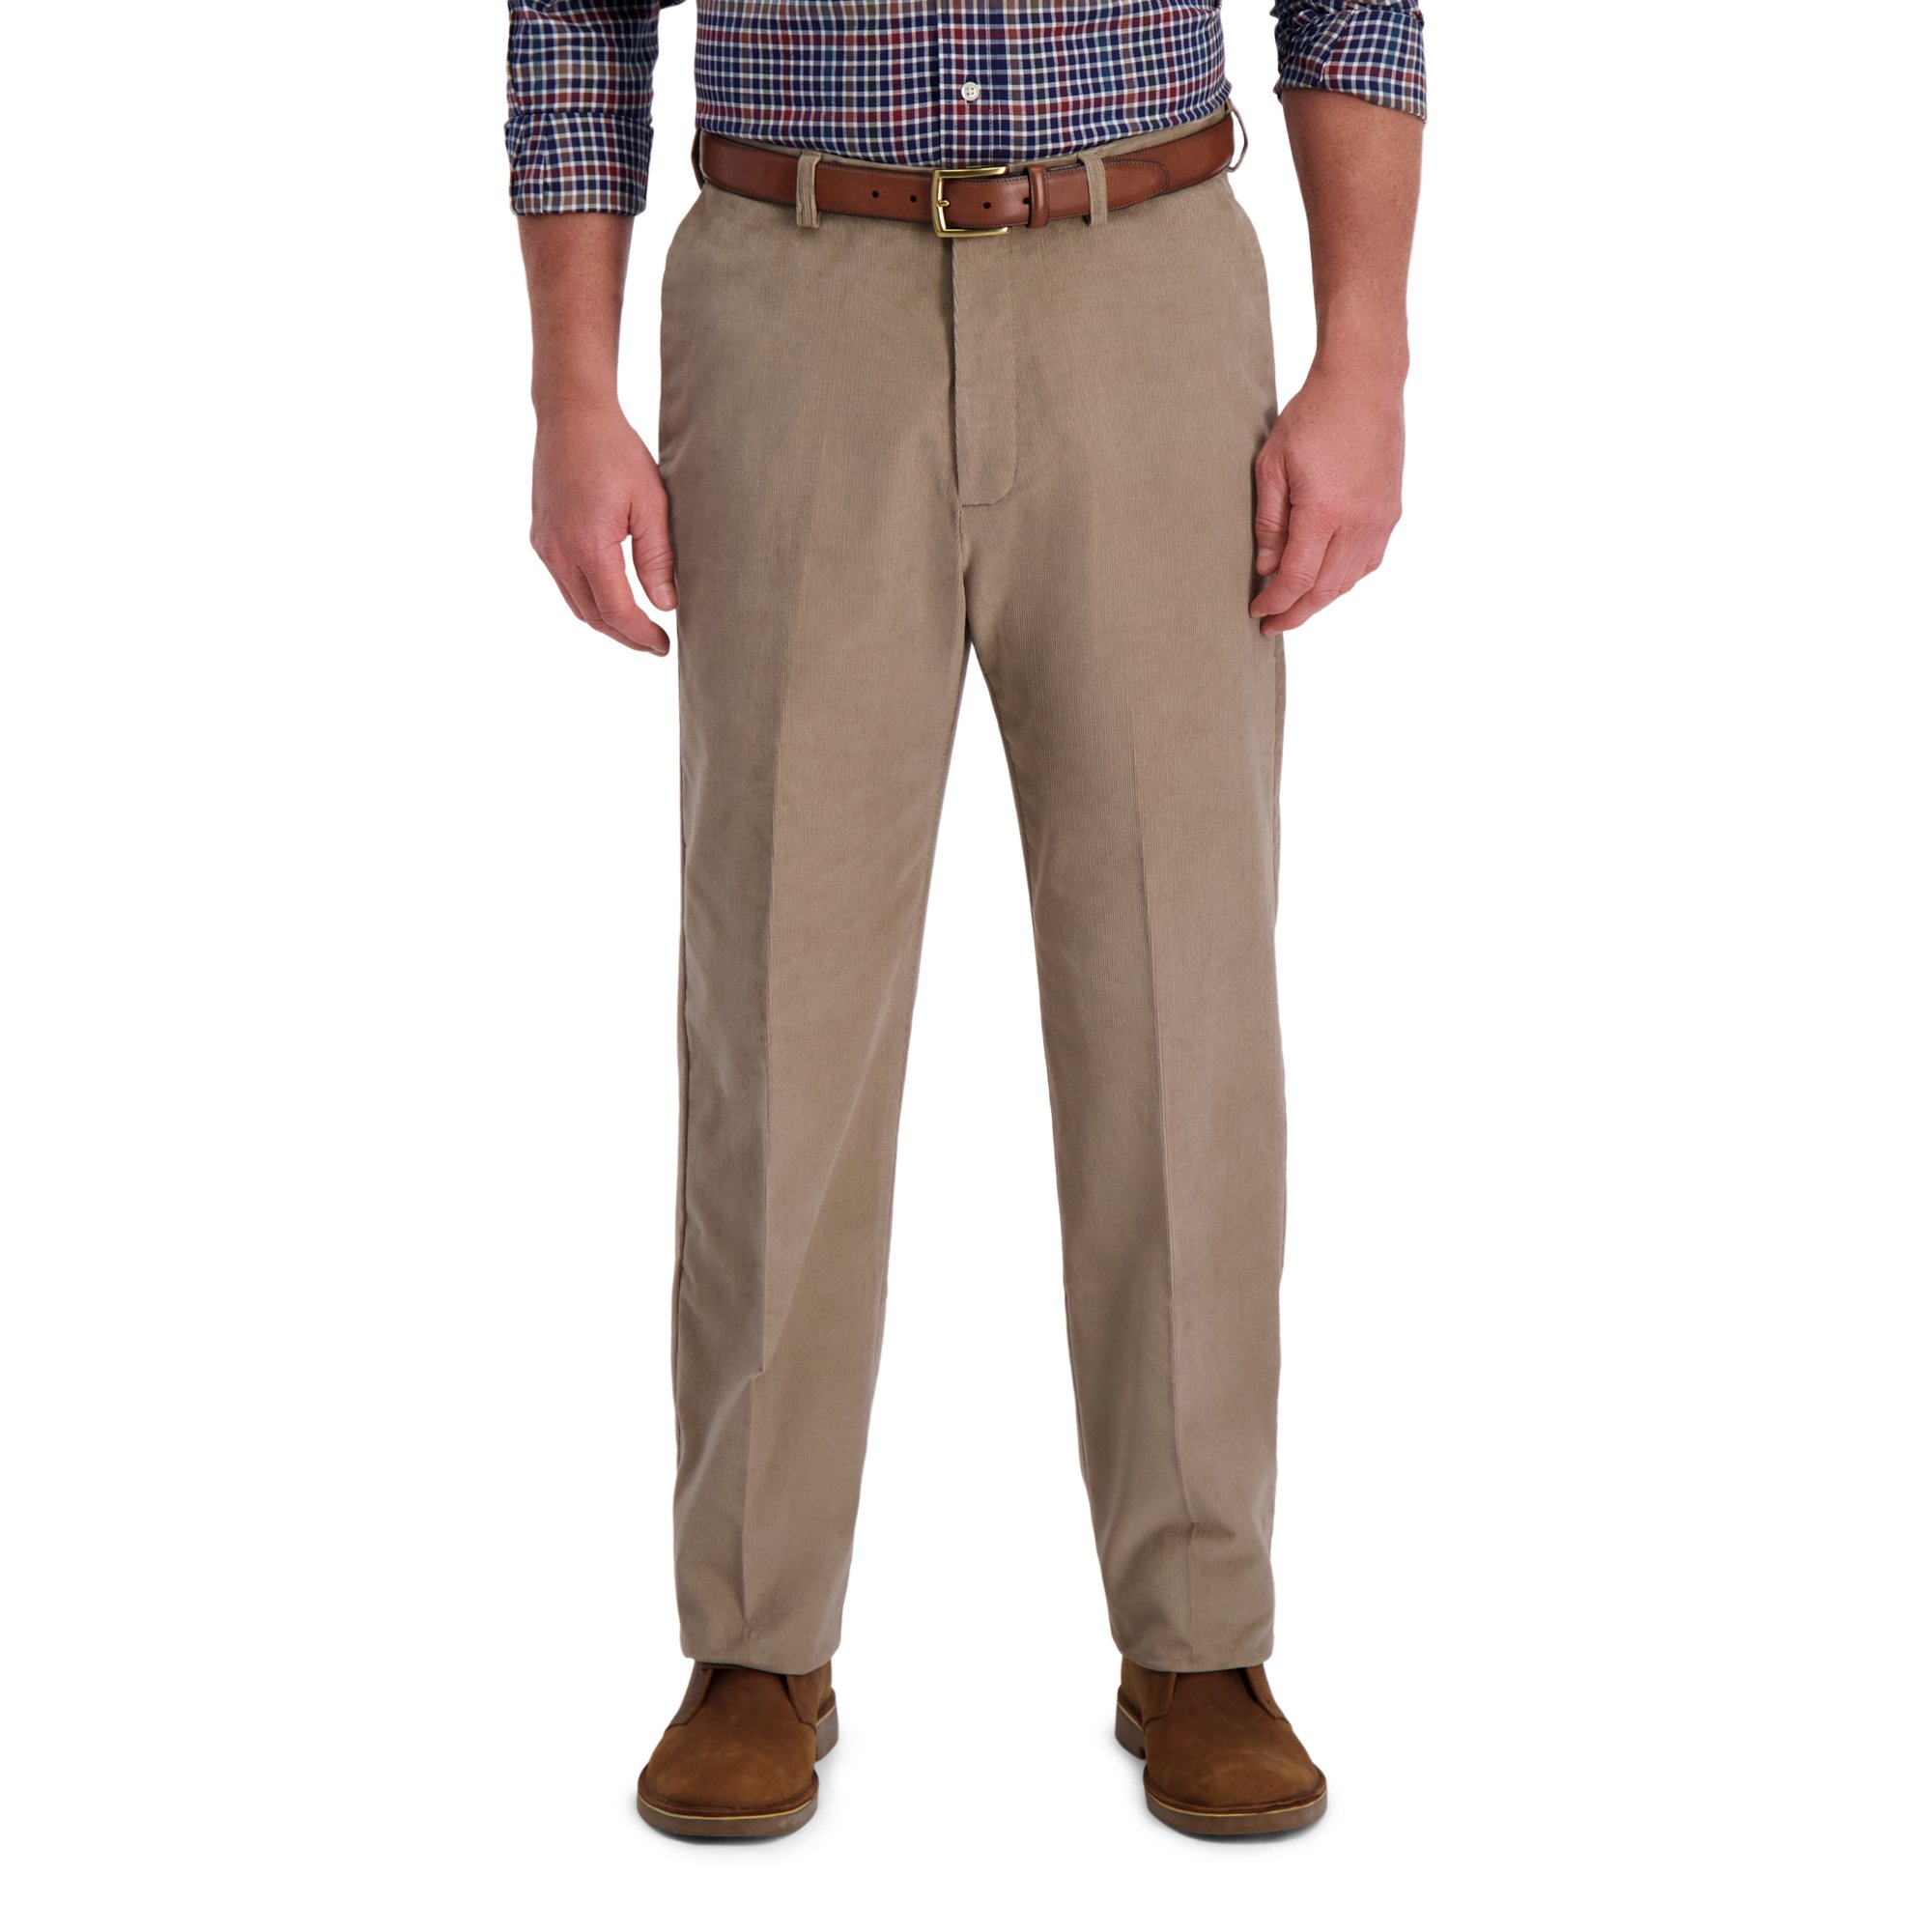 Haggar Mens Corduroy Classic Fit Flat Front Expandable Waistband Pant